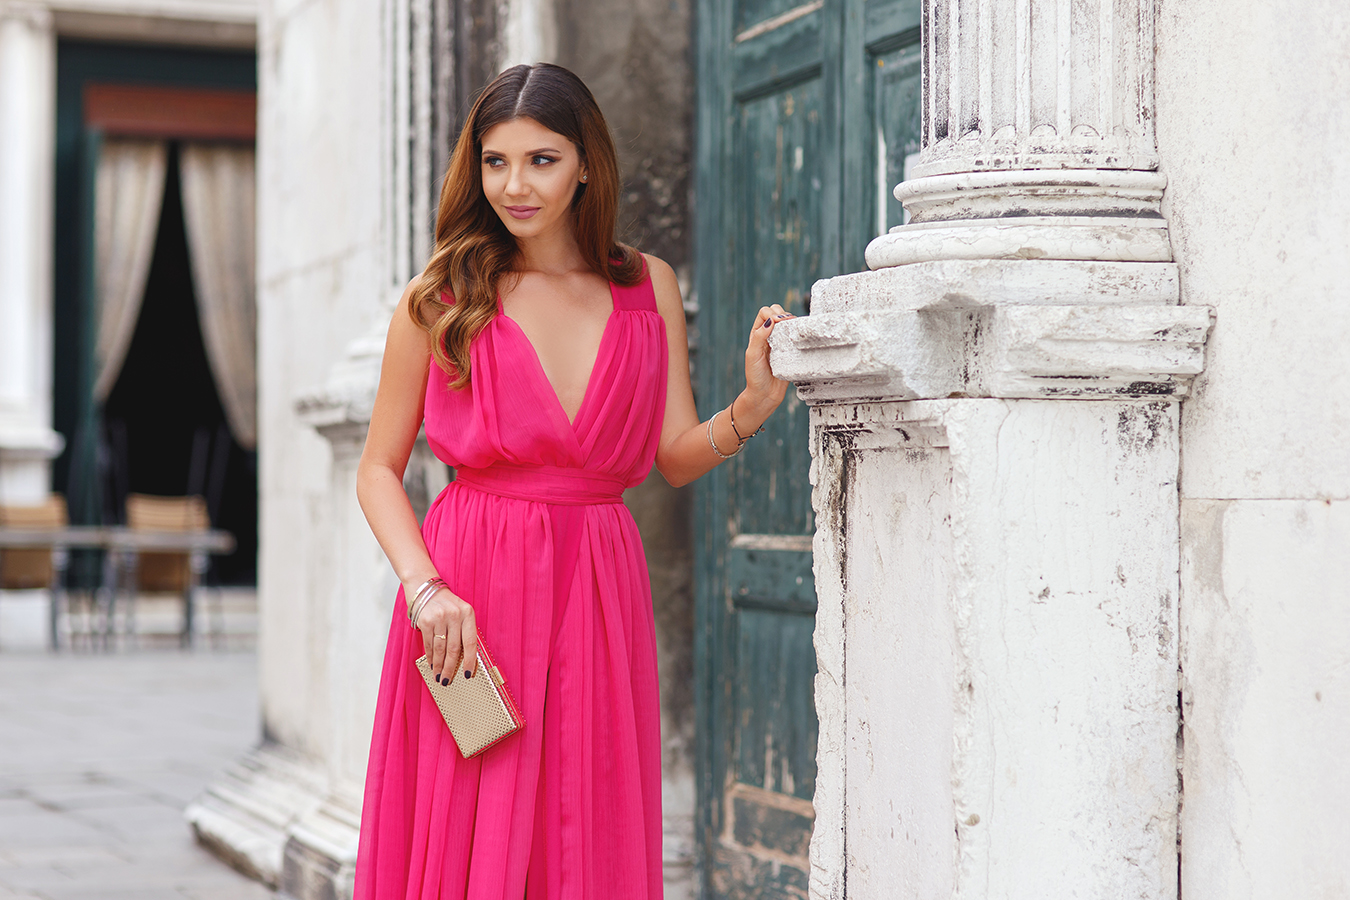 larisa costea, larisa costea blog, the mysterious girl, the mysterious girl blog, fashion blog, blogger, fashion, fashionista, it girl, travel blog, travel, traveler, ootd, lotd, outfit inspiration,look of the day,outfit of the day,what to wear, venice, venezia, san marco,campo san fantin,teatro de la fenice, fashion blogger in venice,larisa in venice, larisainvenice,larisainvenezia,larisainitaly, travel blogger, travelin style,long pink dress,long fuchsia dress, chic diva dress,rochie chic diva, rochie ocazie,rochie lunga, cocktail dress,gown, gold sandals,jessica buurman,giuseppe zanotti, golden clutch,chicwish, soft curls